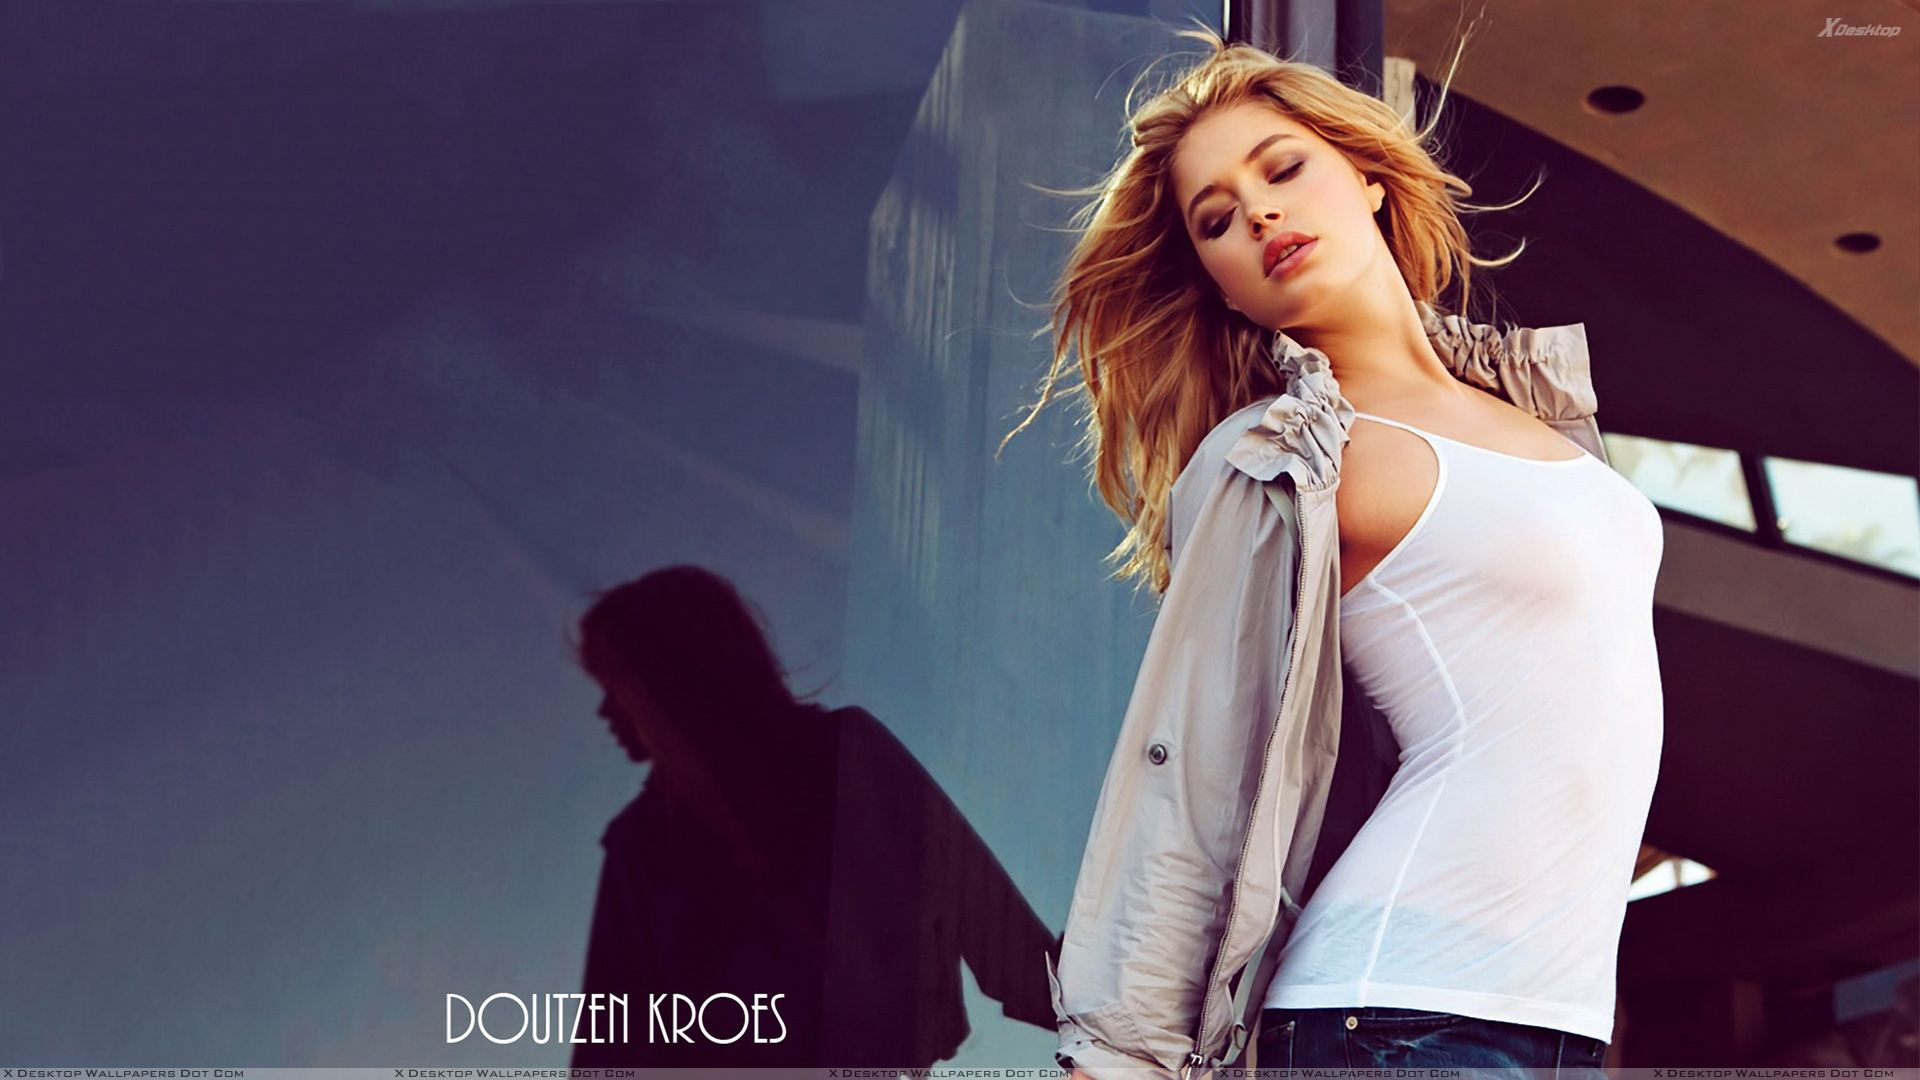 doutzen kroes wallpapers, photos & images in hd